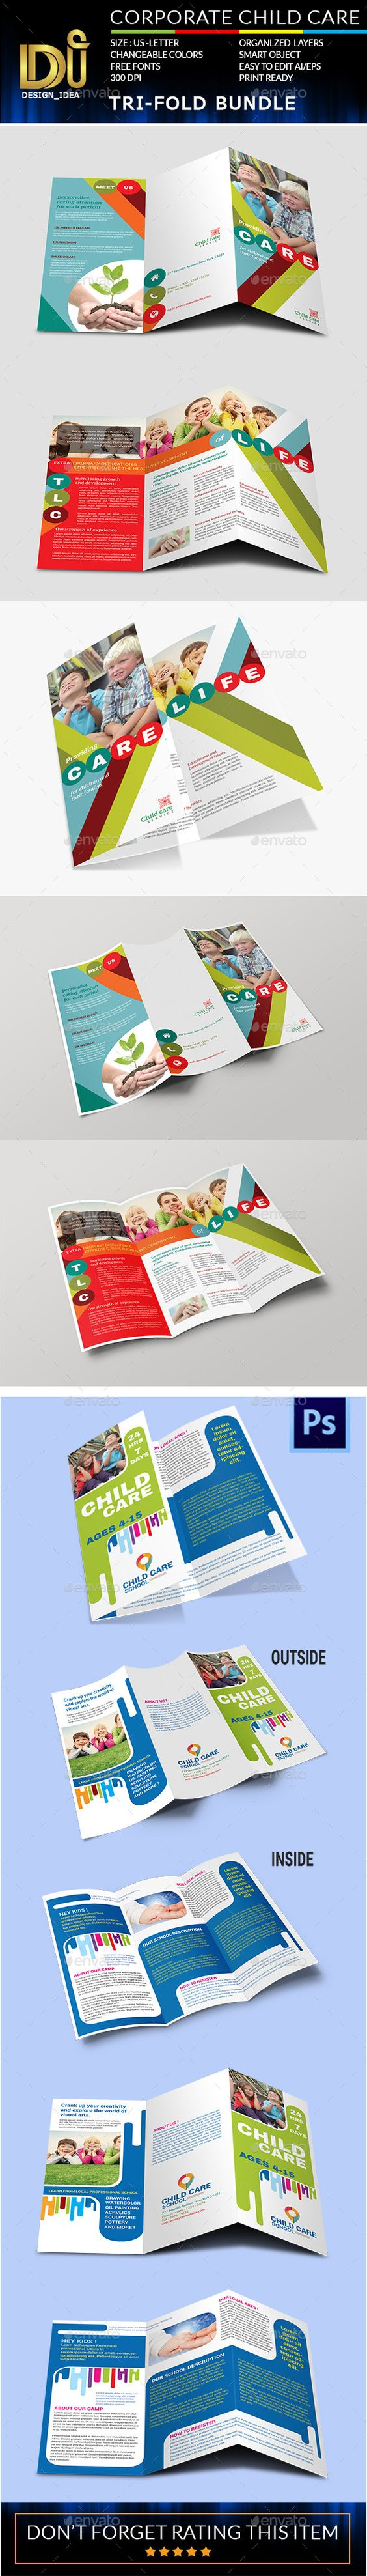 child care brochure template - brochures templates and children on pinterest